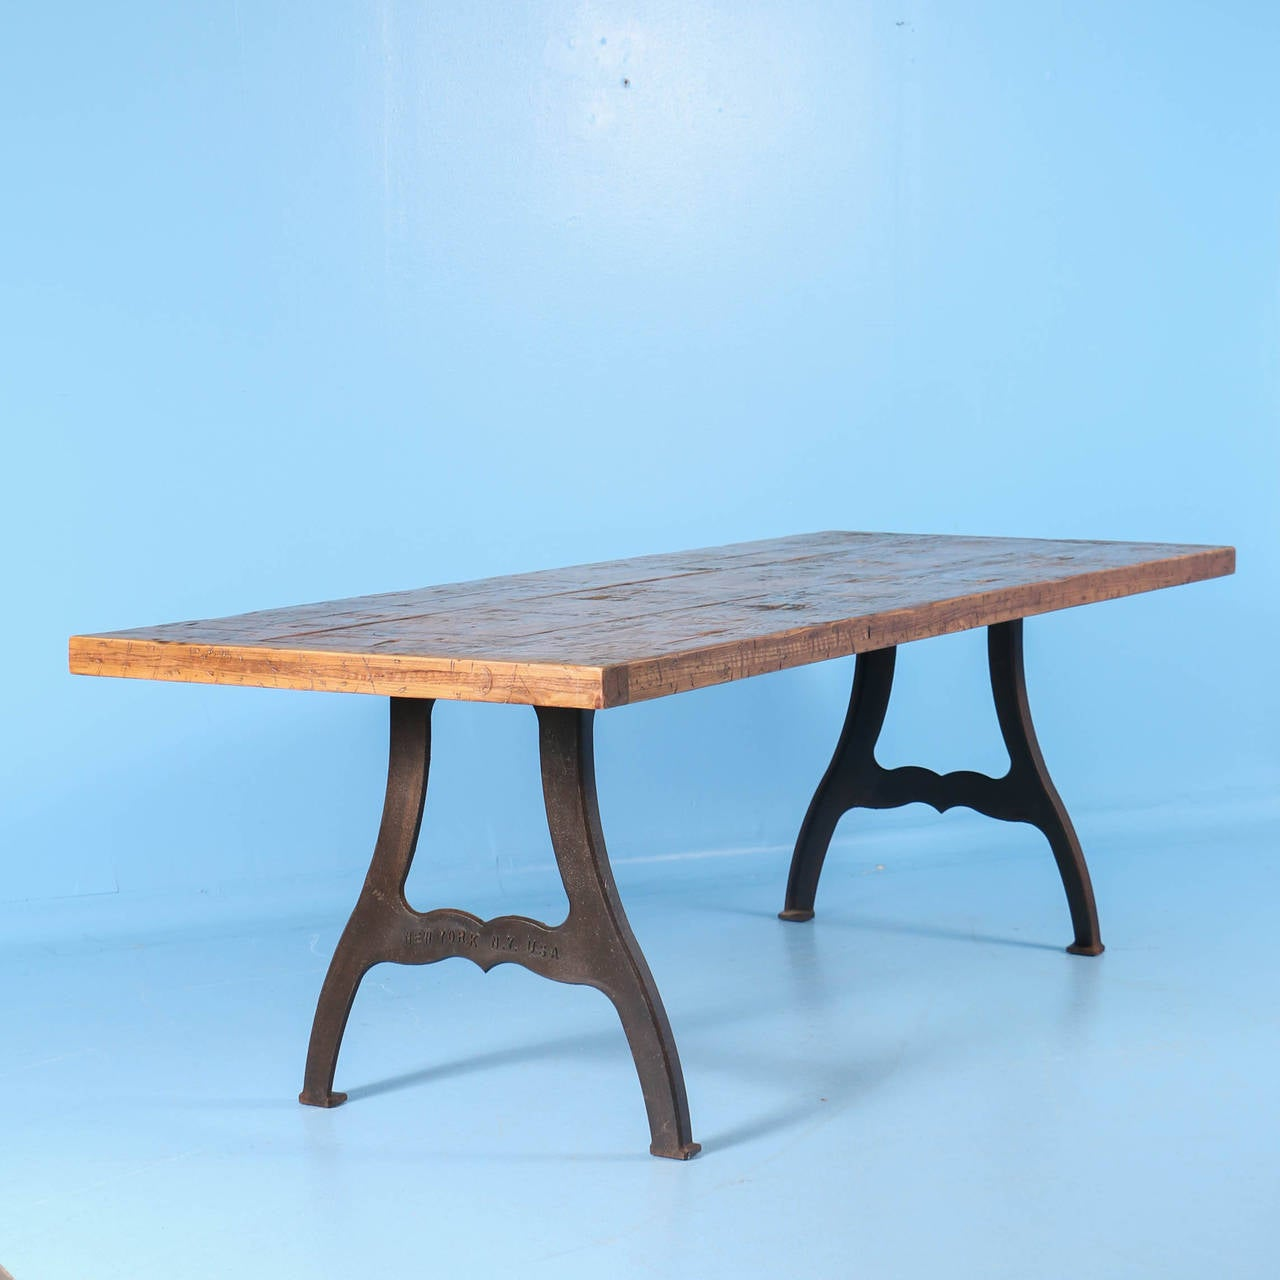 Vintage Industrial Look Dining Table from Reclaimed Wood  : IMG6540l from www.1stdibs.com size 1280 x 1280 jpeg 75kB